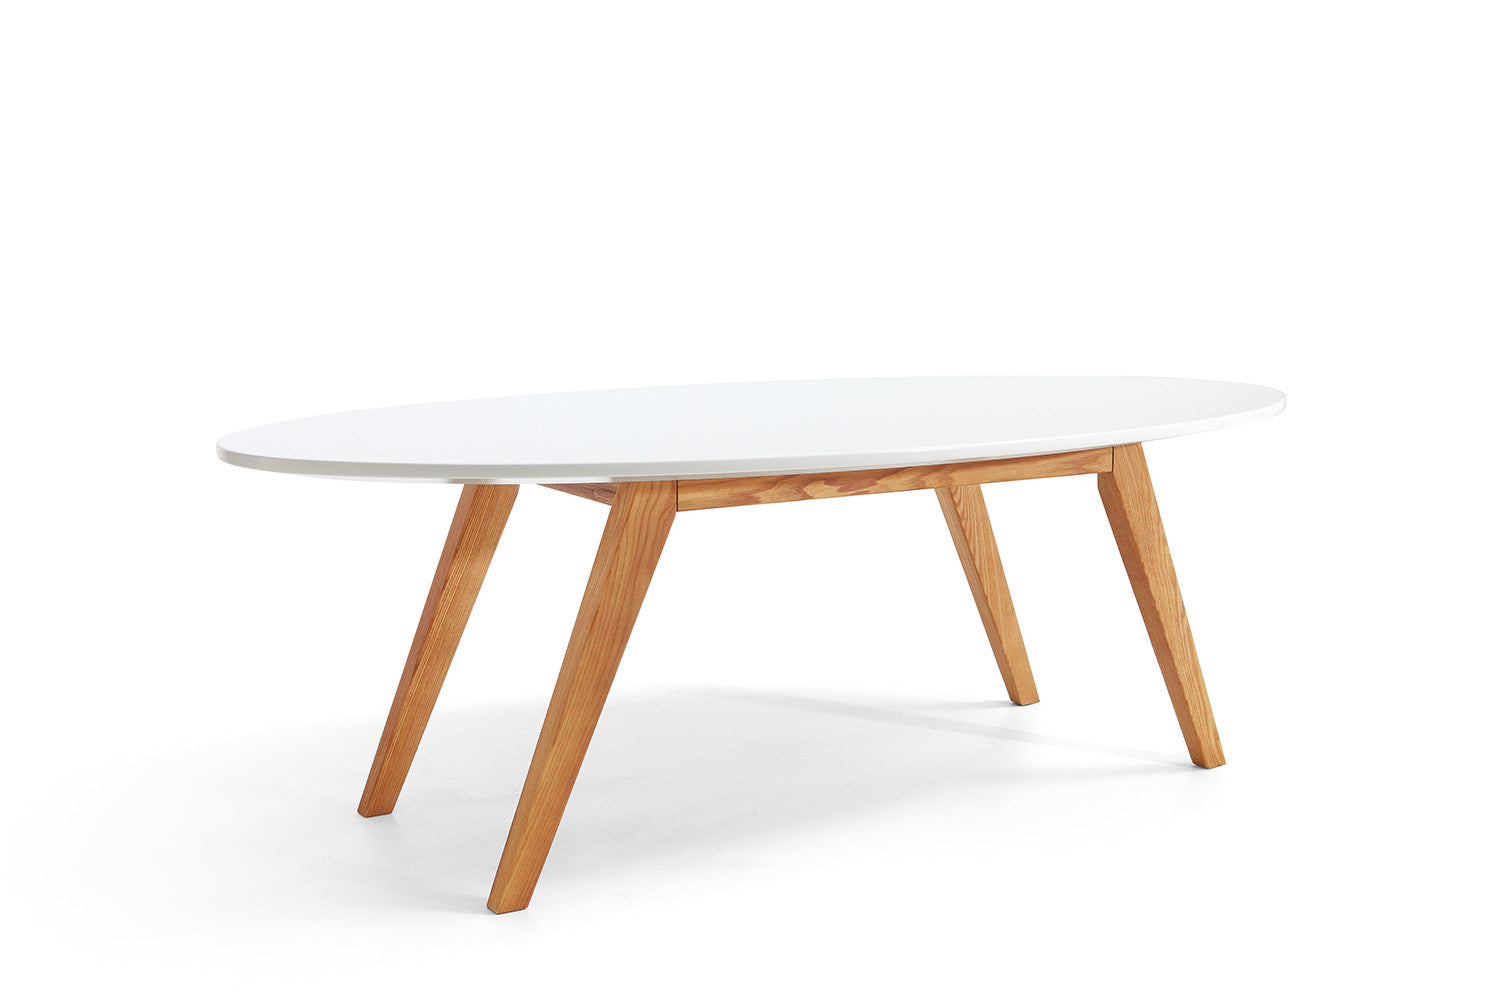 Table basse design en bois blanche b le dewarens for Pied table basse bois